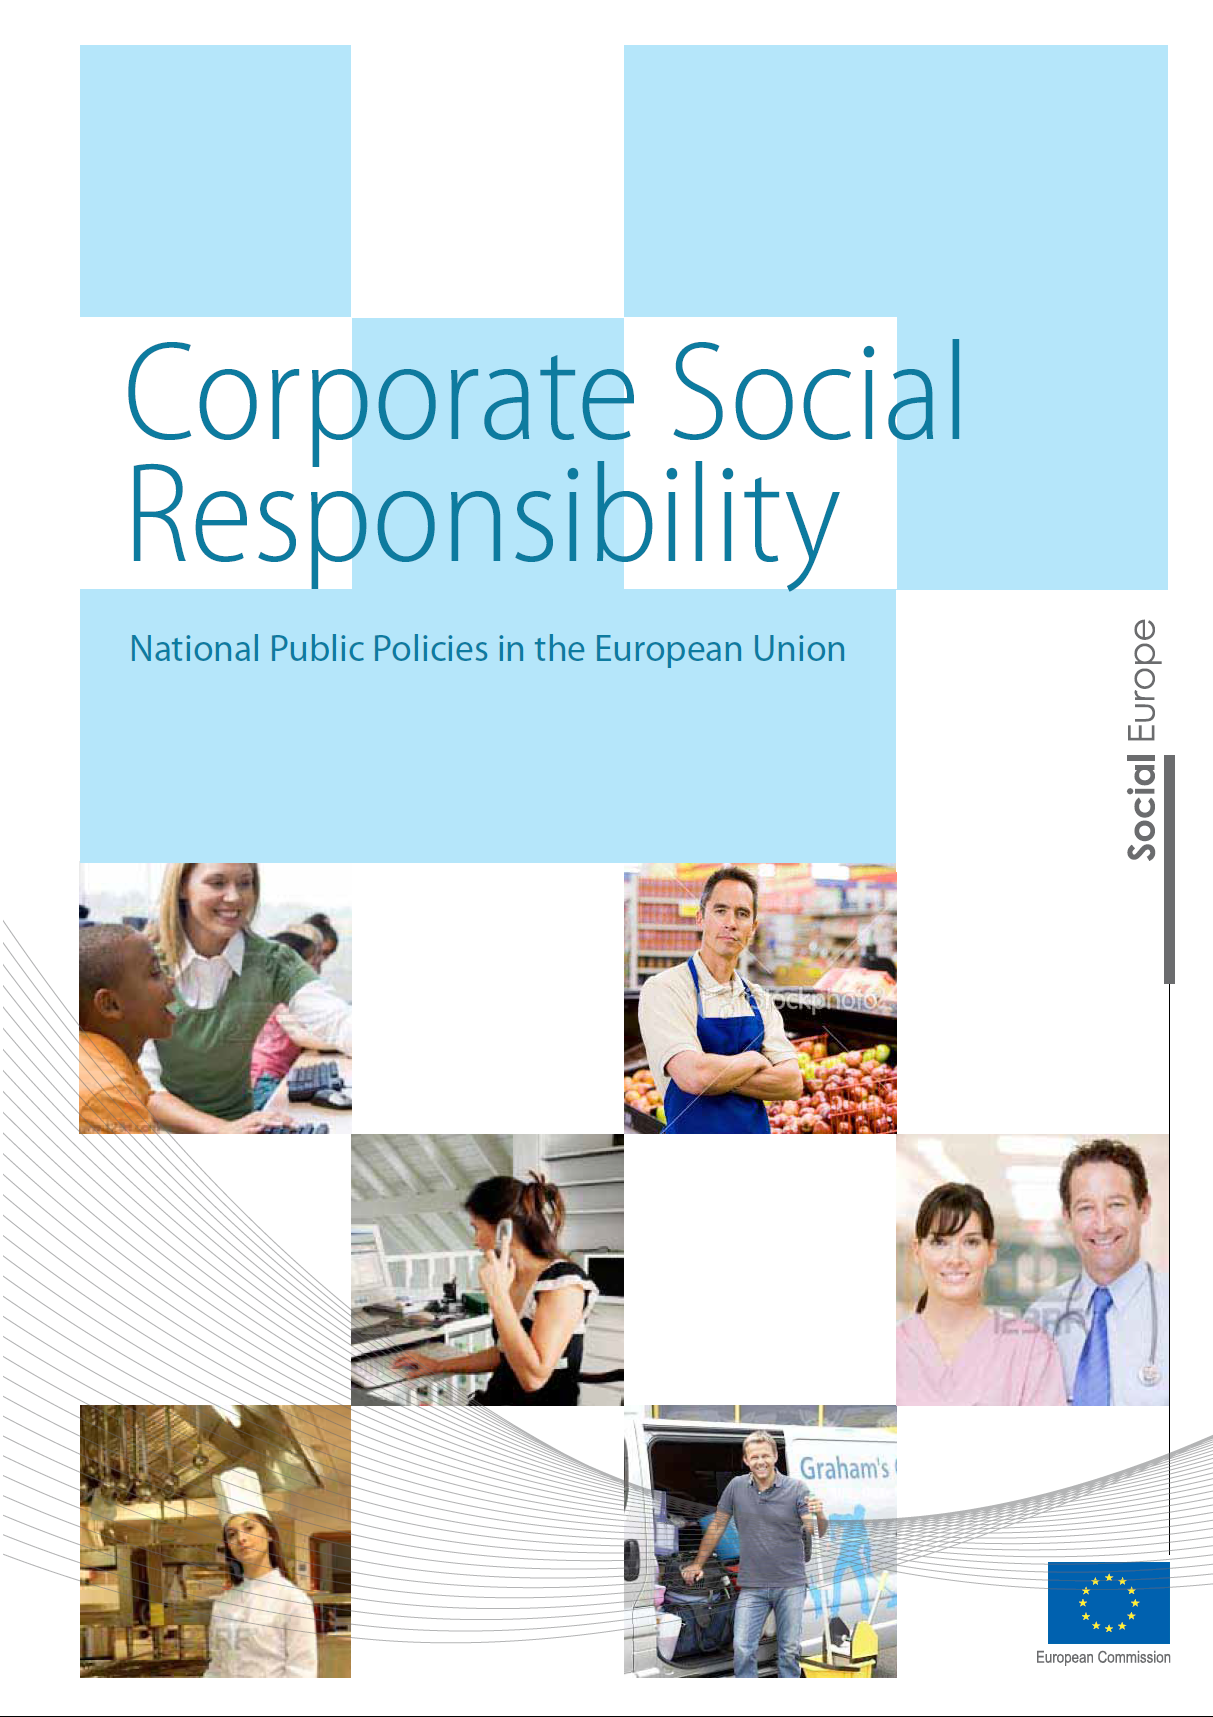 Corporate Social Responsibility - National Public Policies in the European Union